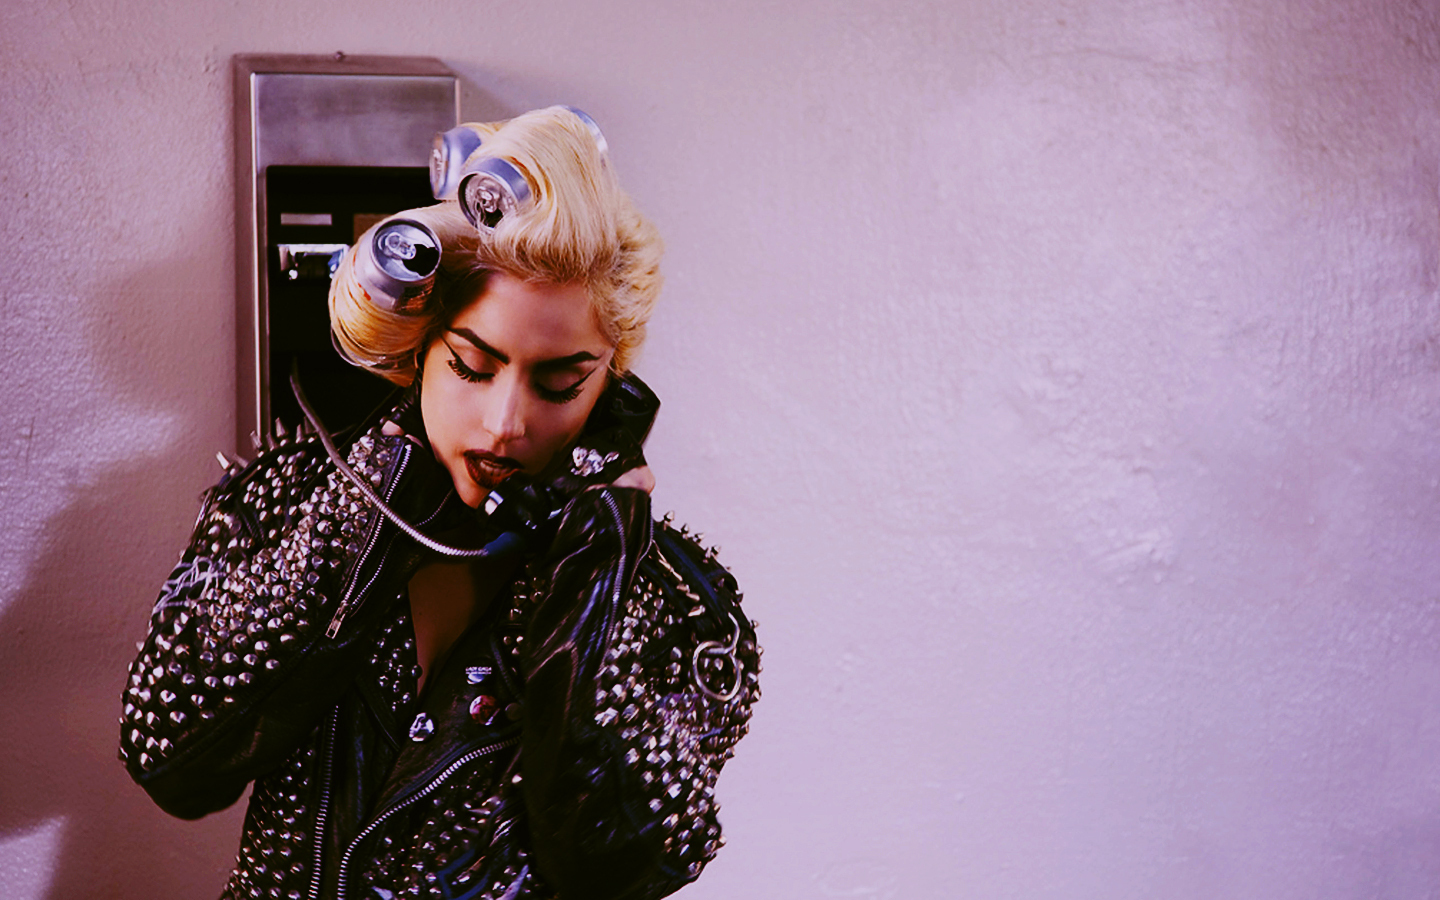 Telephone-lady-gaga-10901649-1440-900.jp